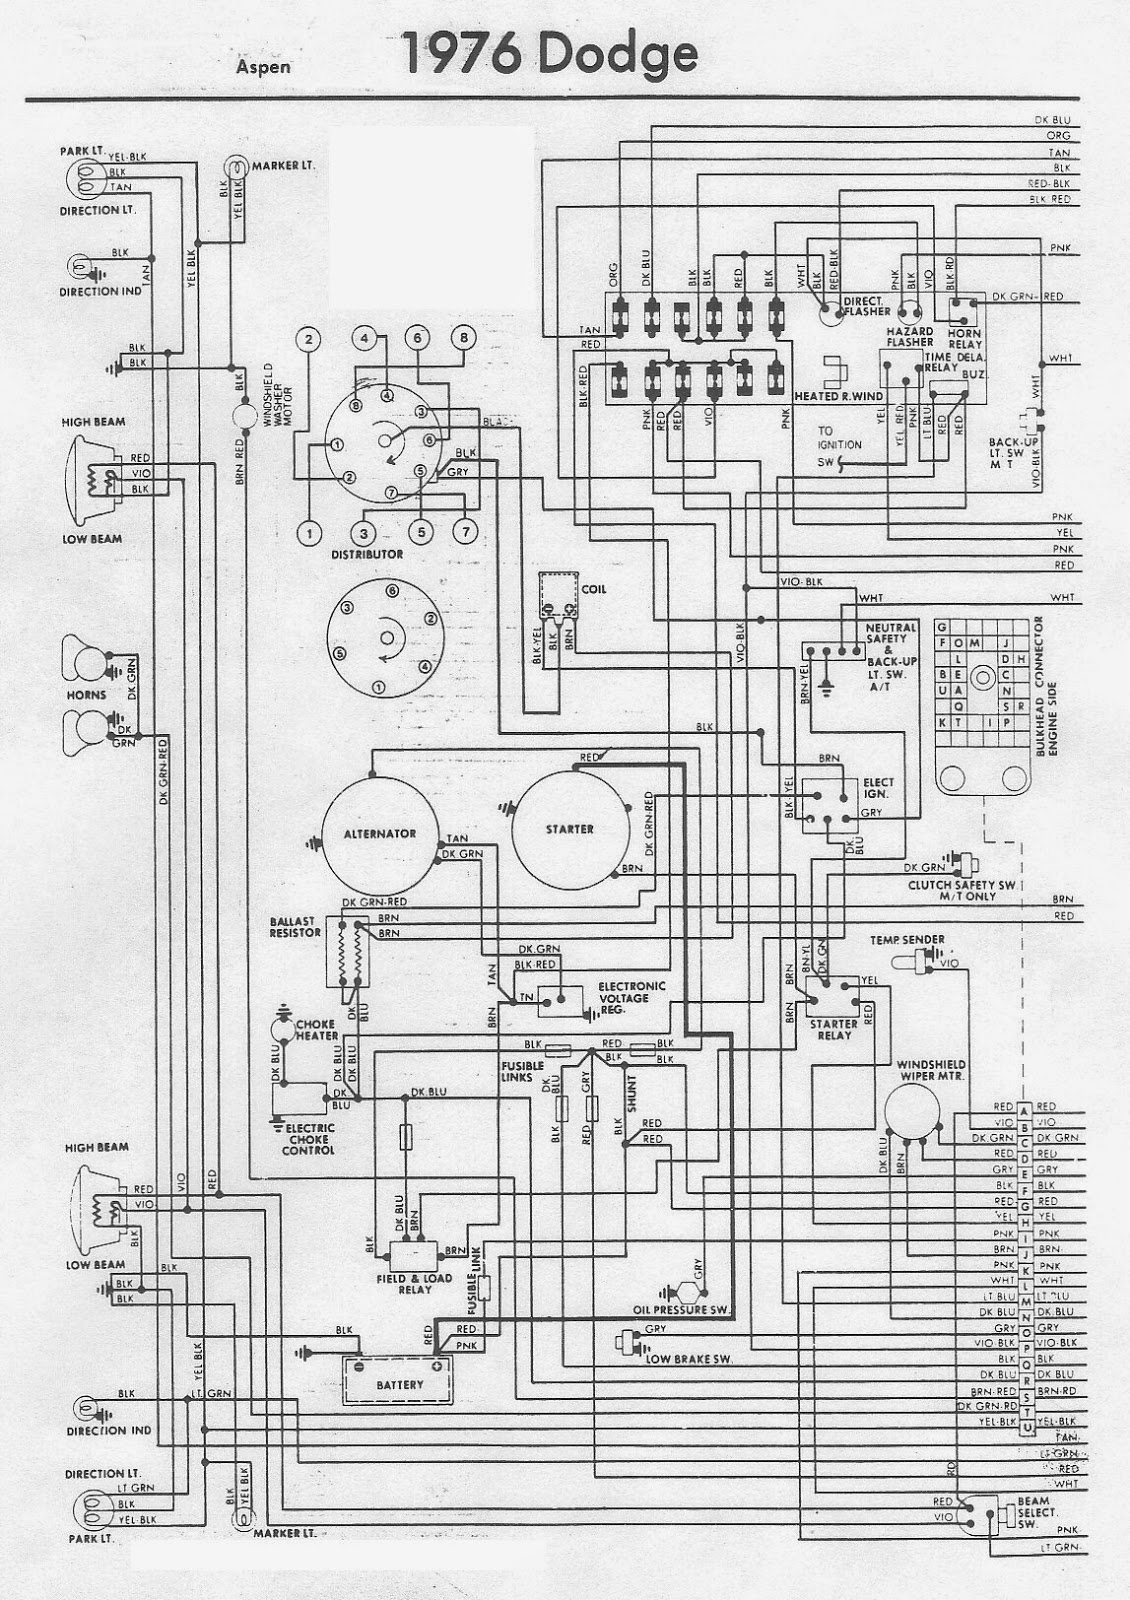 medium resolution of wiring diagram electrical system circuit 1976 dodge aspen user guide 1979 dodge aspen wiring diagram 1979 dodge aspen wiring diagram